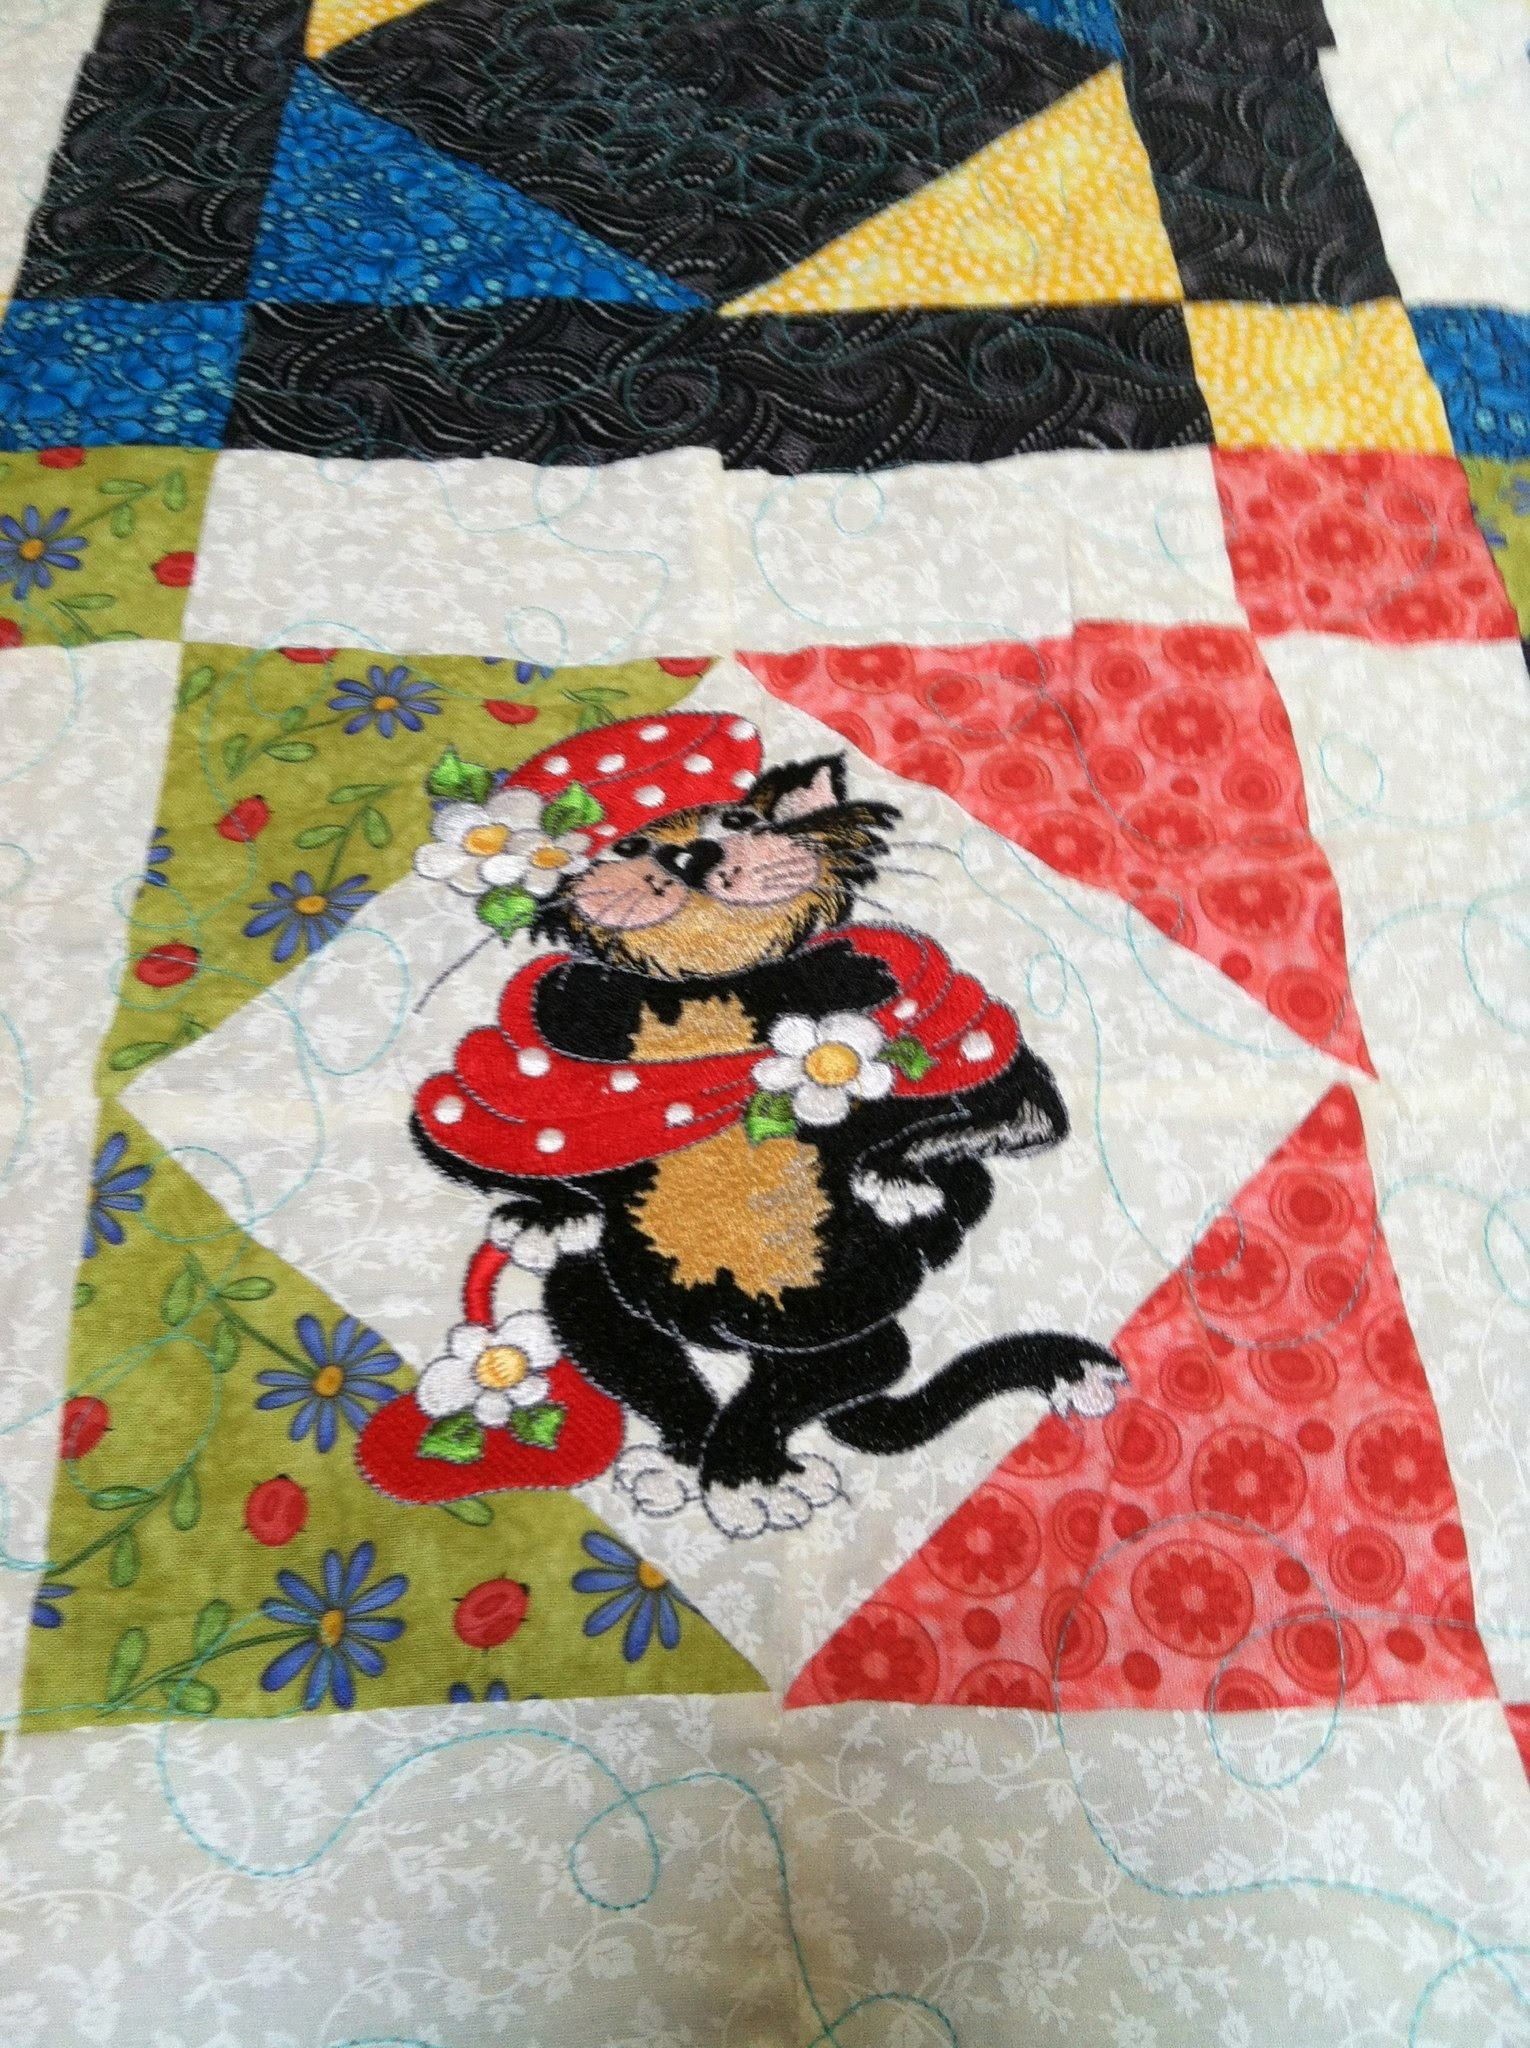 Embroidered Cat on Quilt